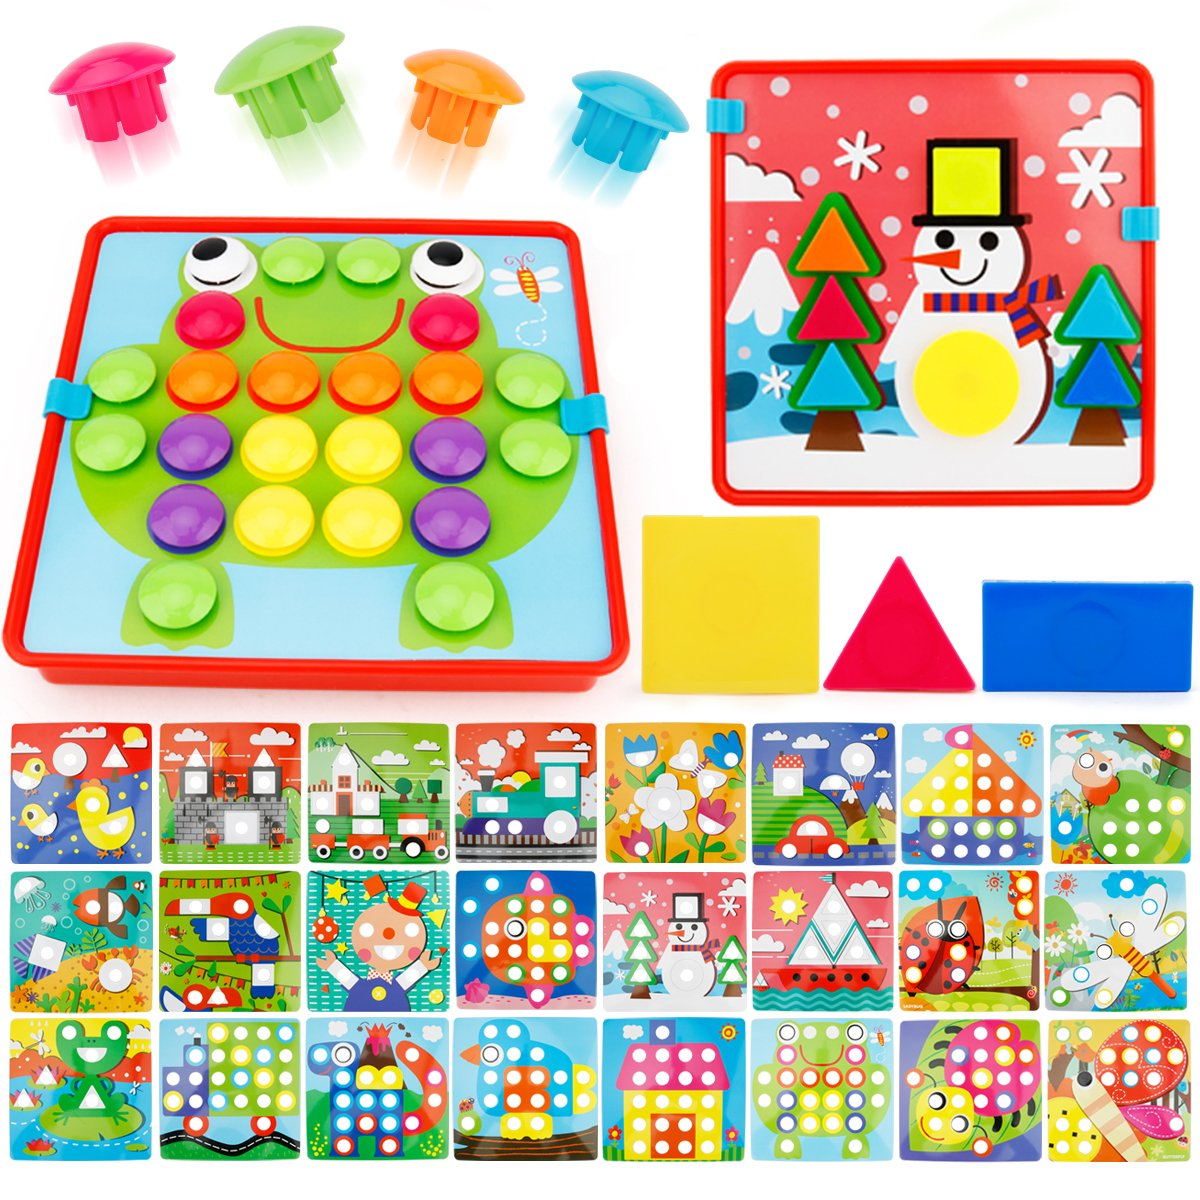 JoyGrow Button Art Color Matching Mosaic Pegboard Set Toddler Toys Color & Geometry Shape Cognition Skill Learning Educational Toys for Boys Girls (72 PCS Buttons and 24 templates )